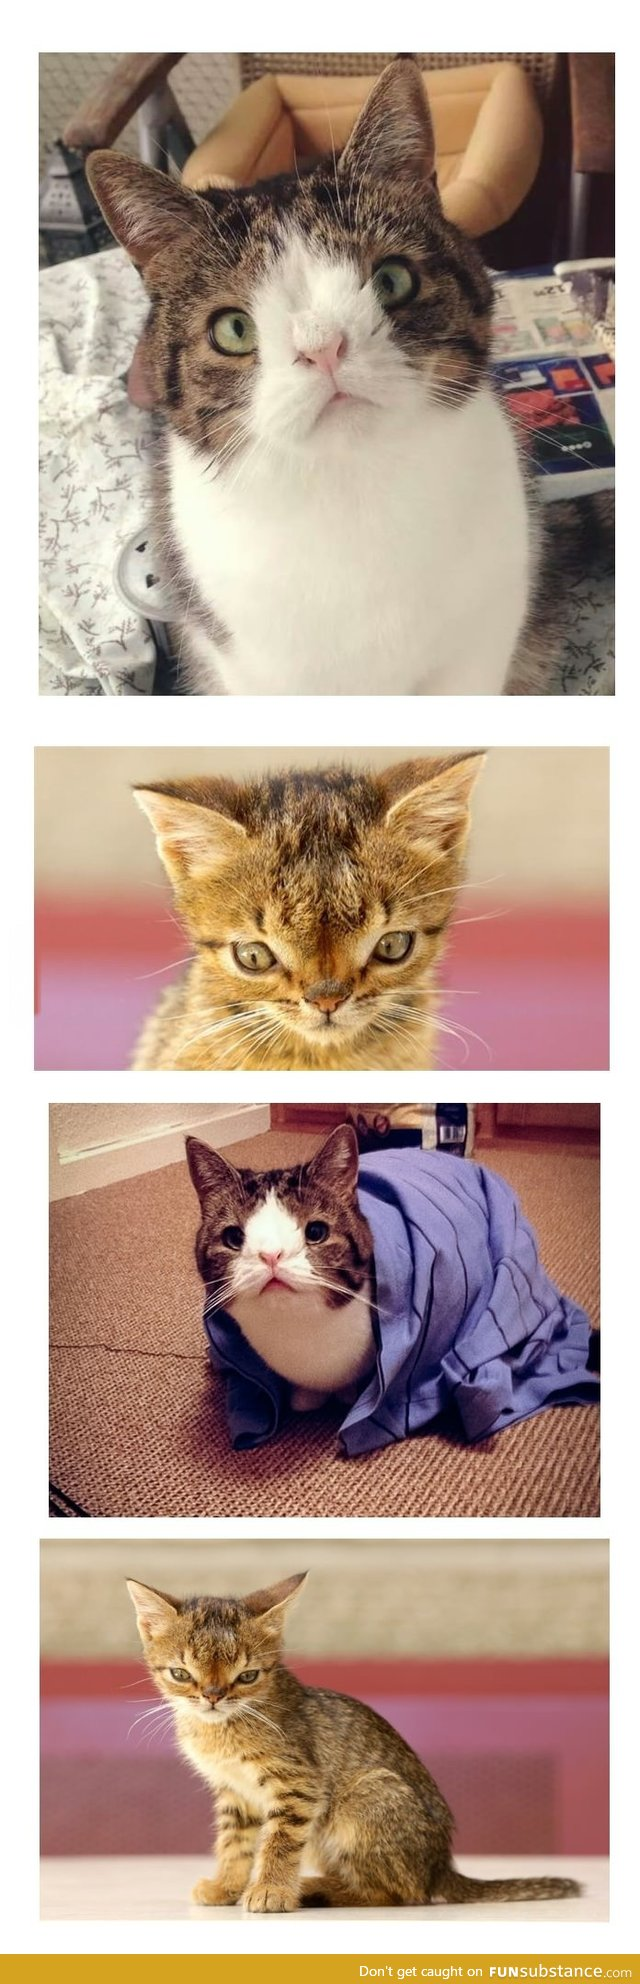 Down syndrome cats Just kitties Down syndrome cat